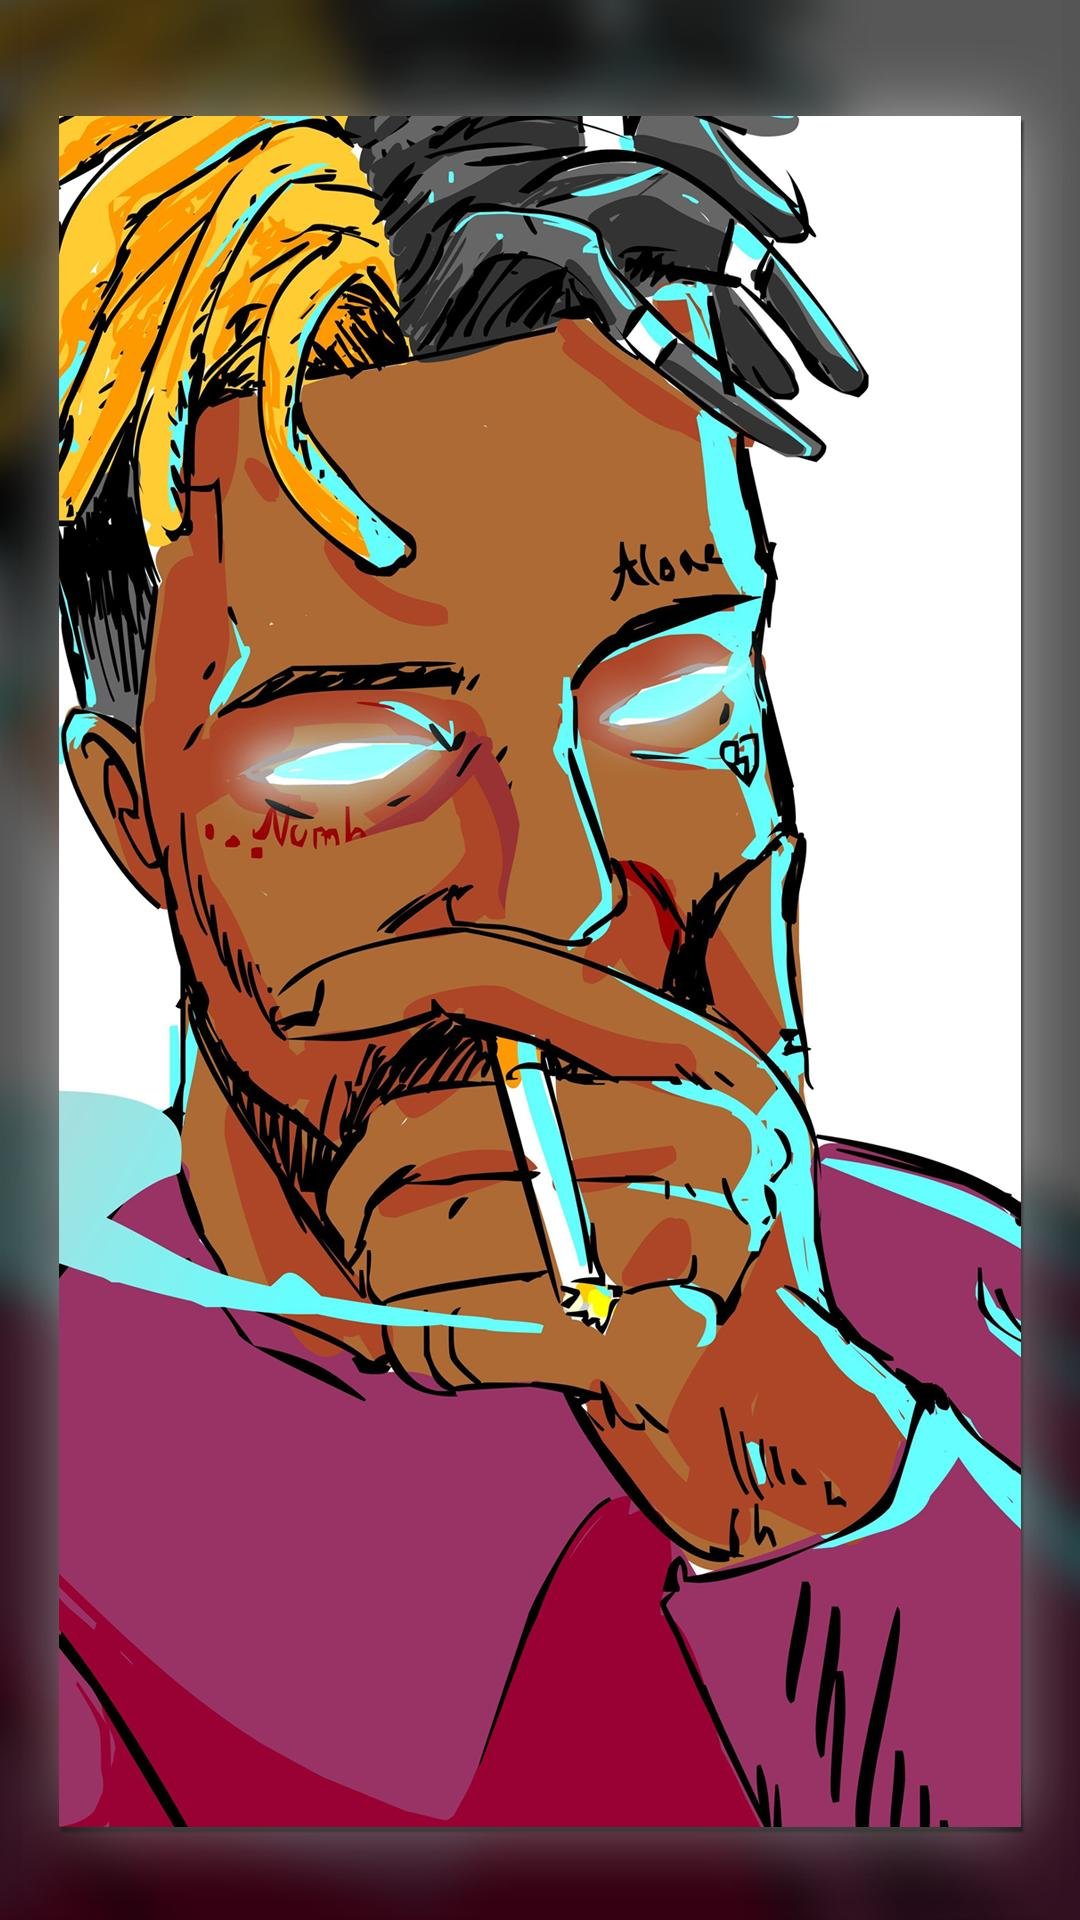 Trill Wallpaper HD for Android   APK Download 1080x1920